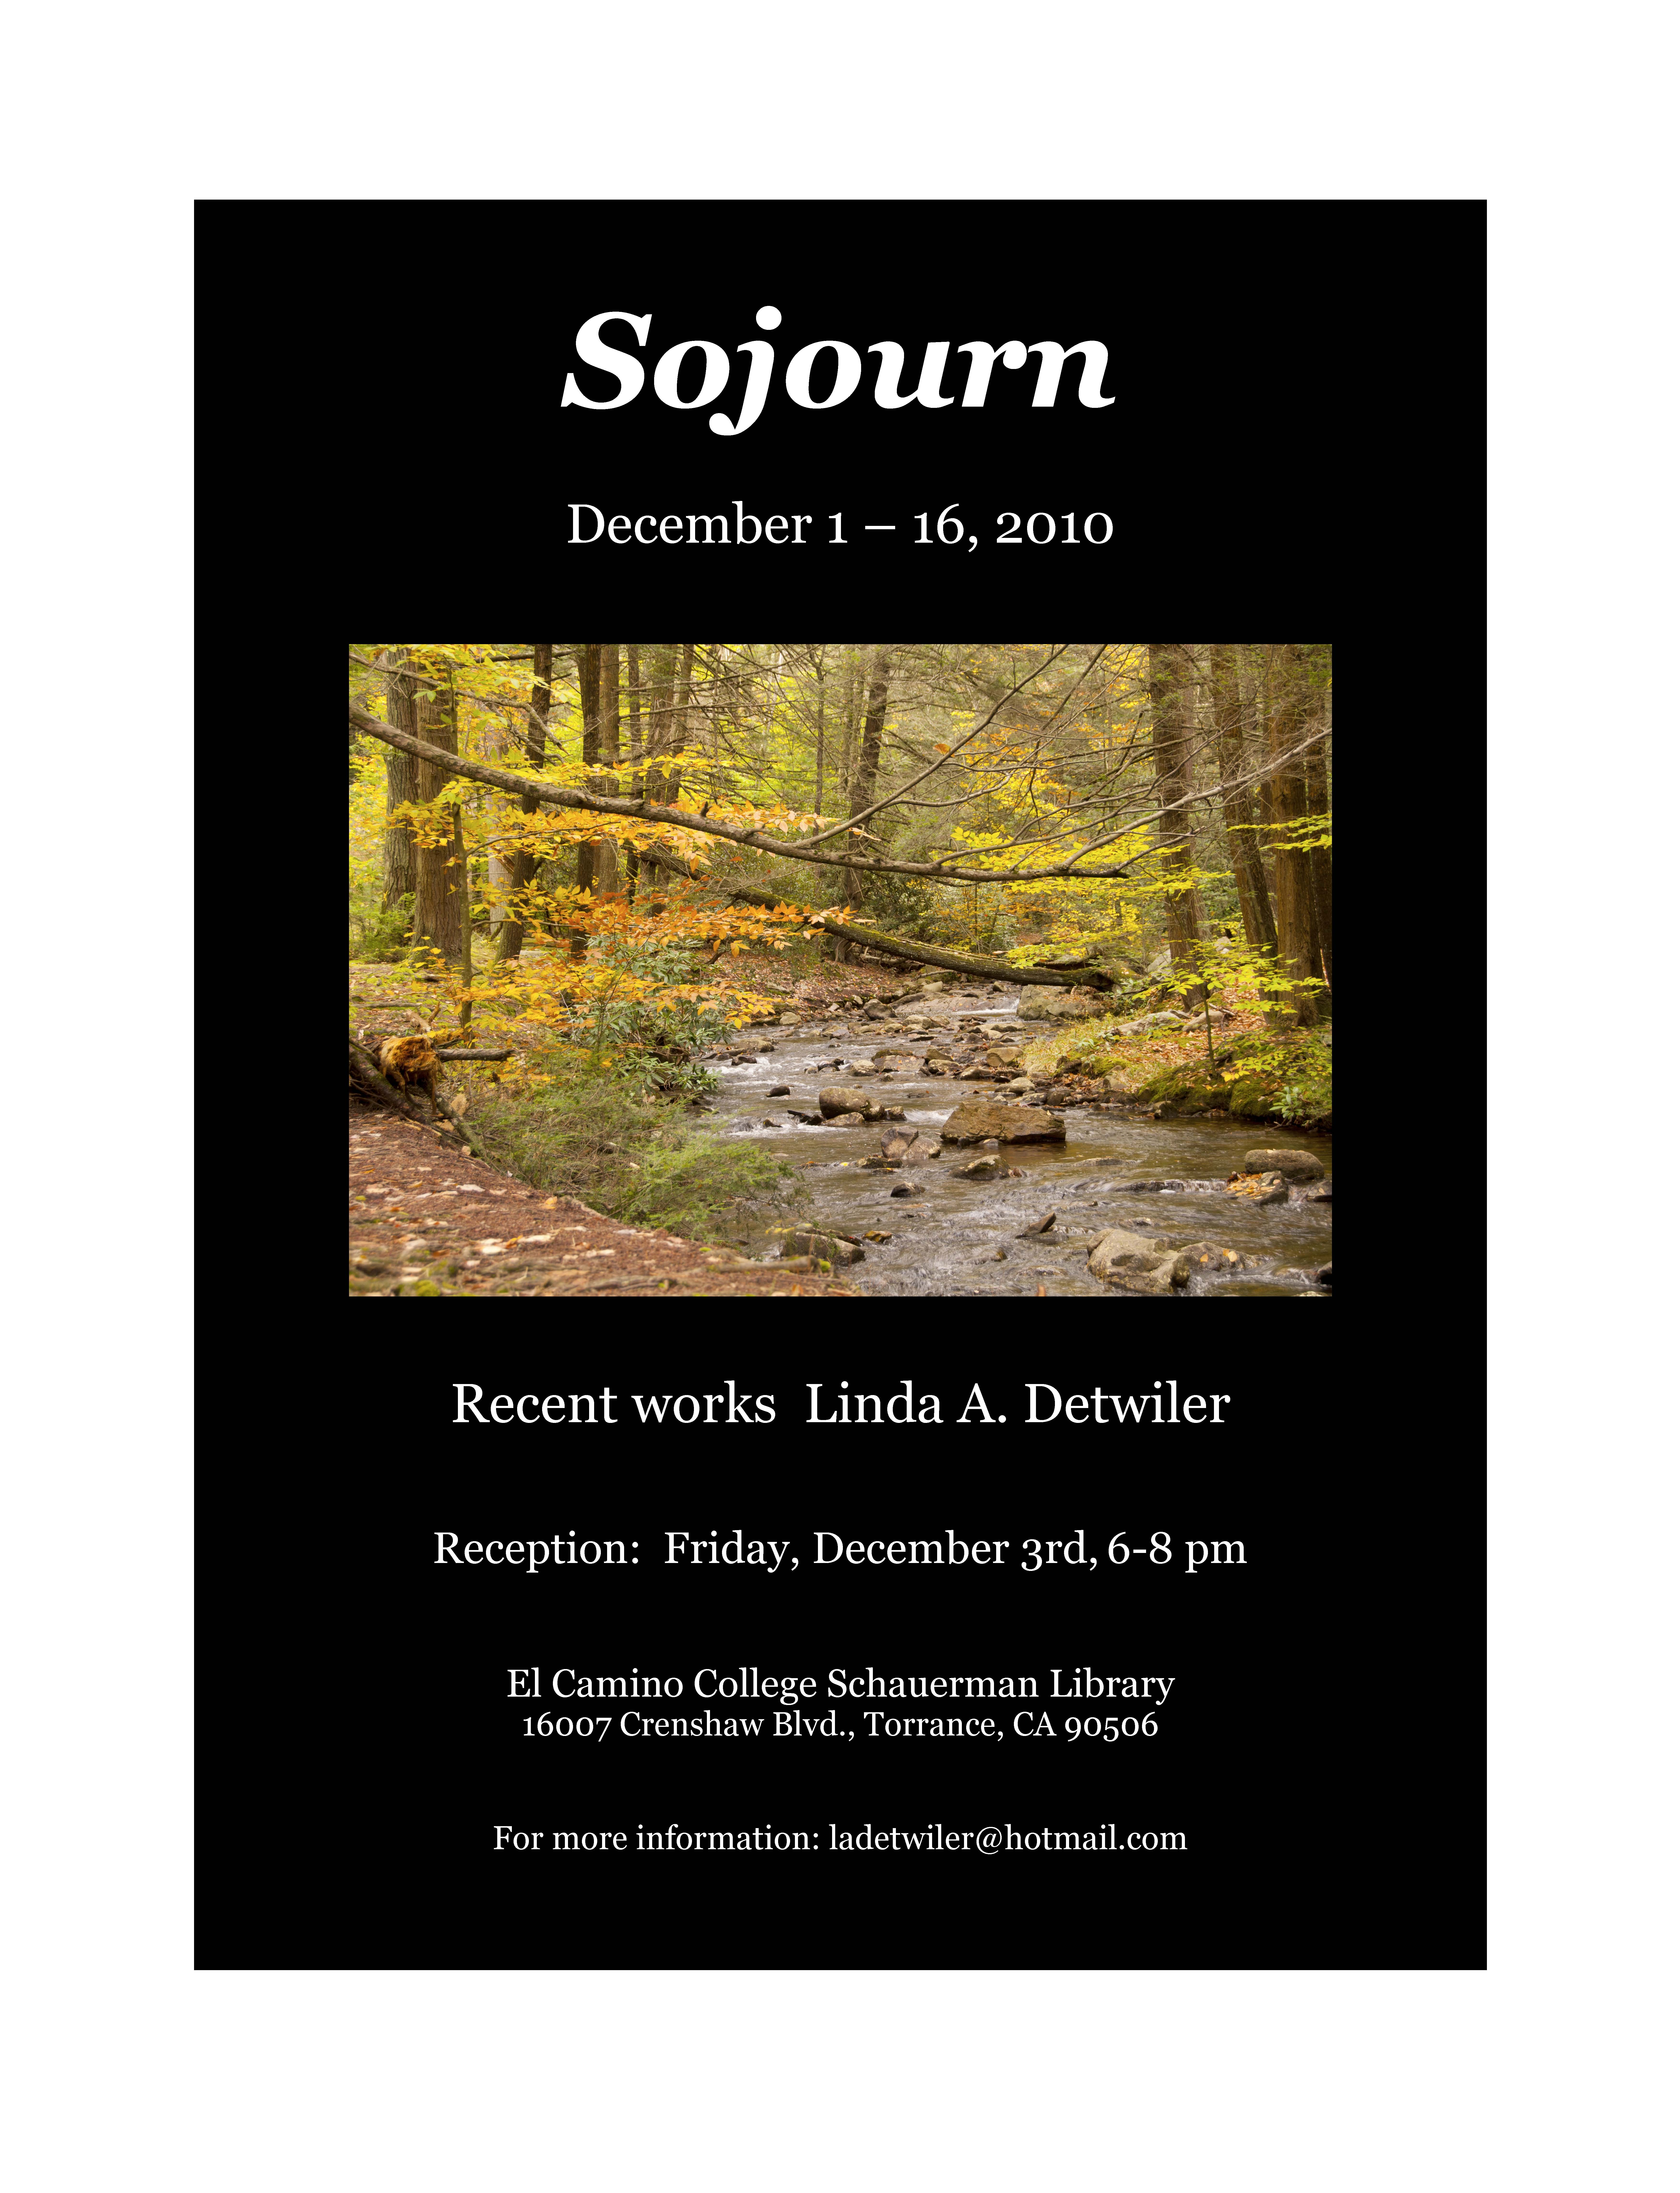 2010 Sojourn